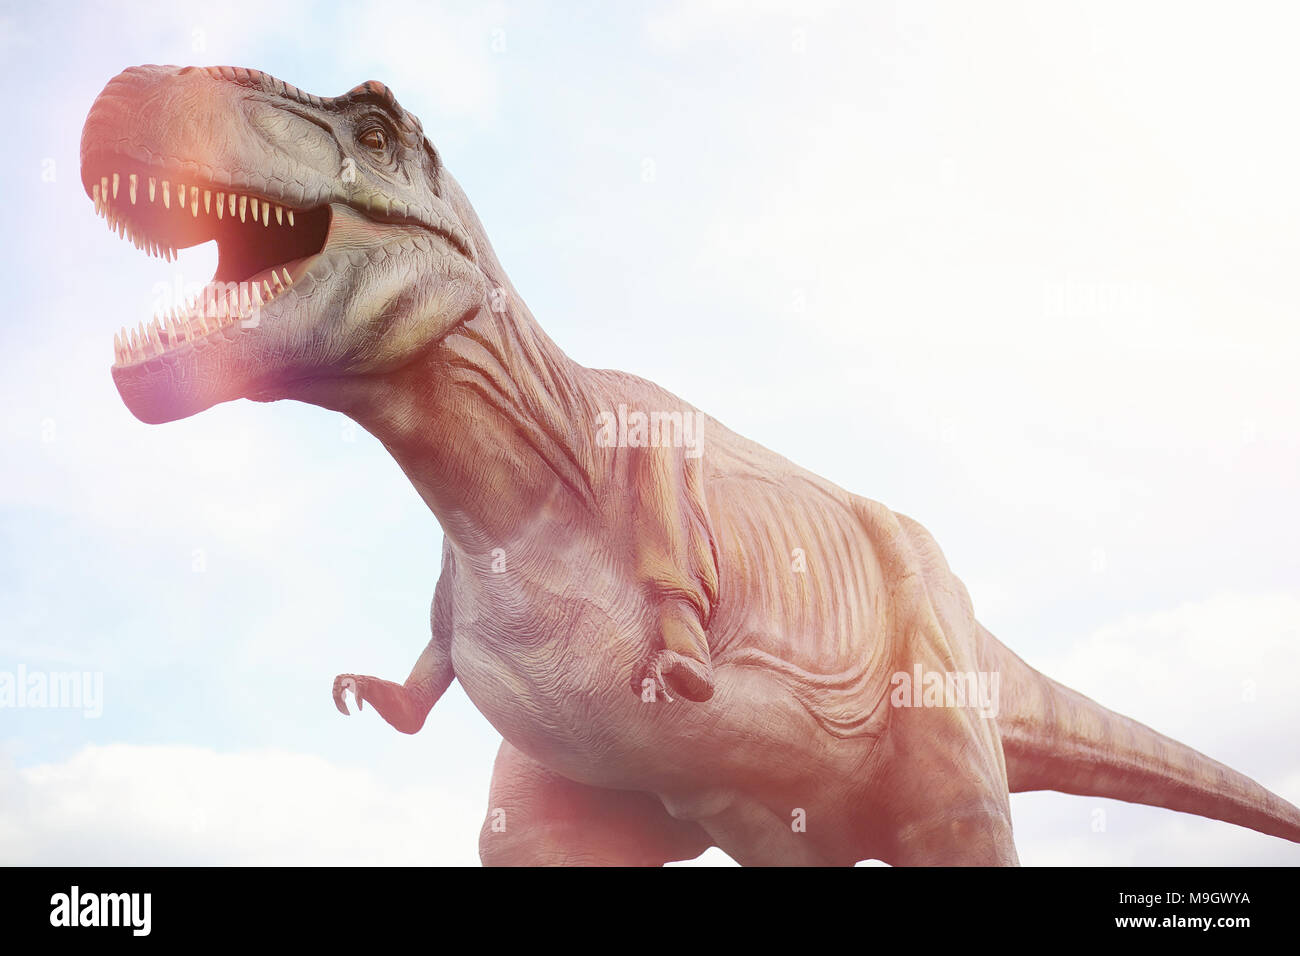 Park of dinosaurs. A dinosaur on the background of nature. Toy d - Stock Image